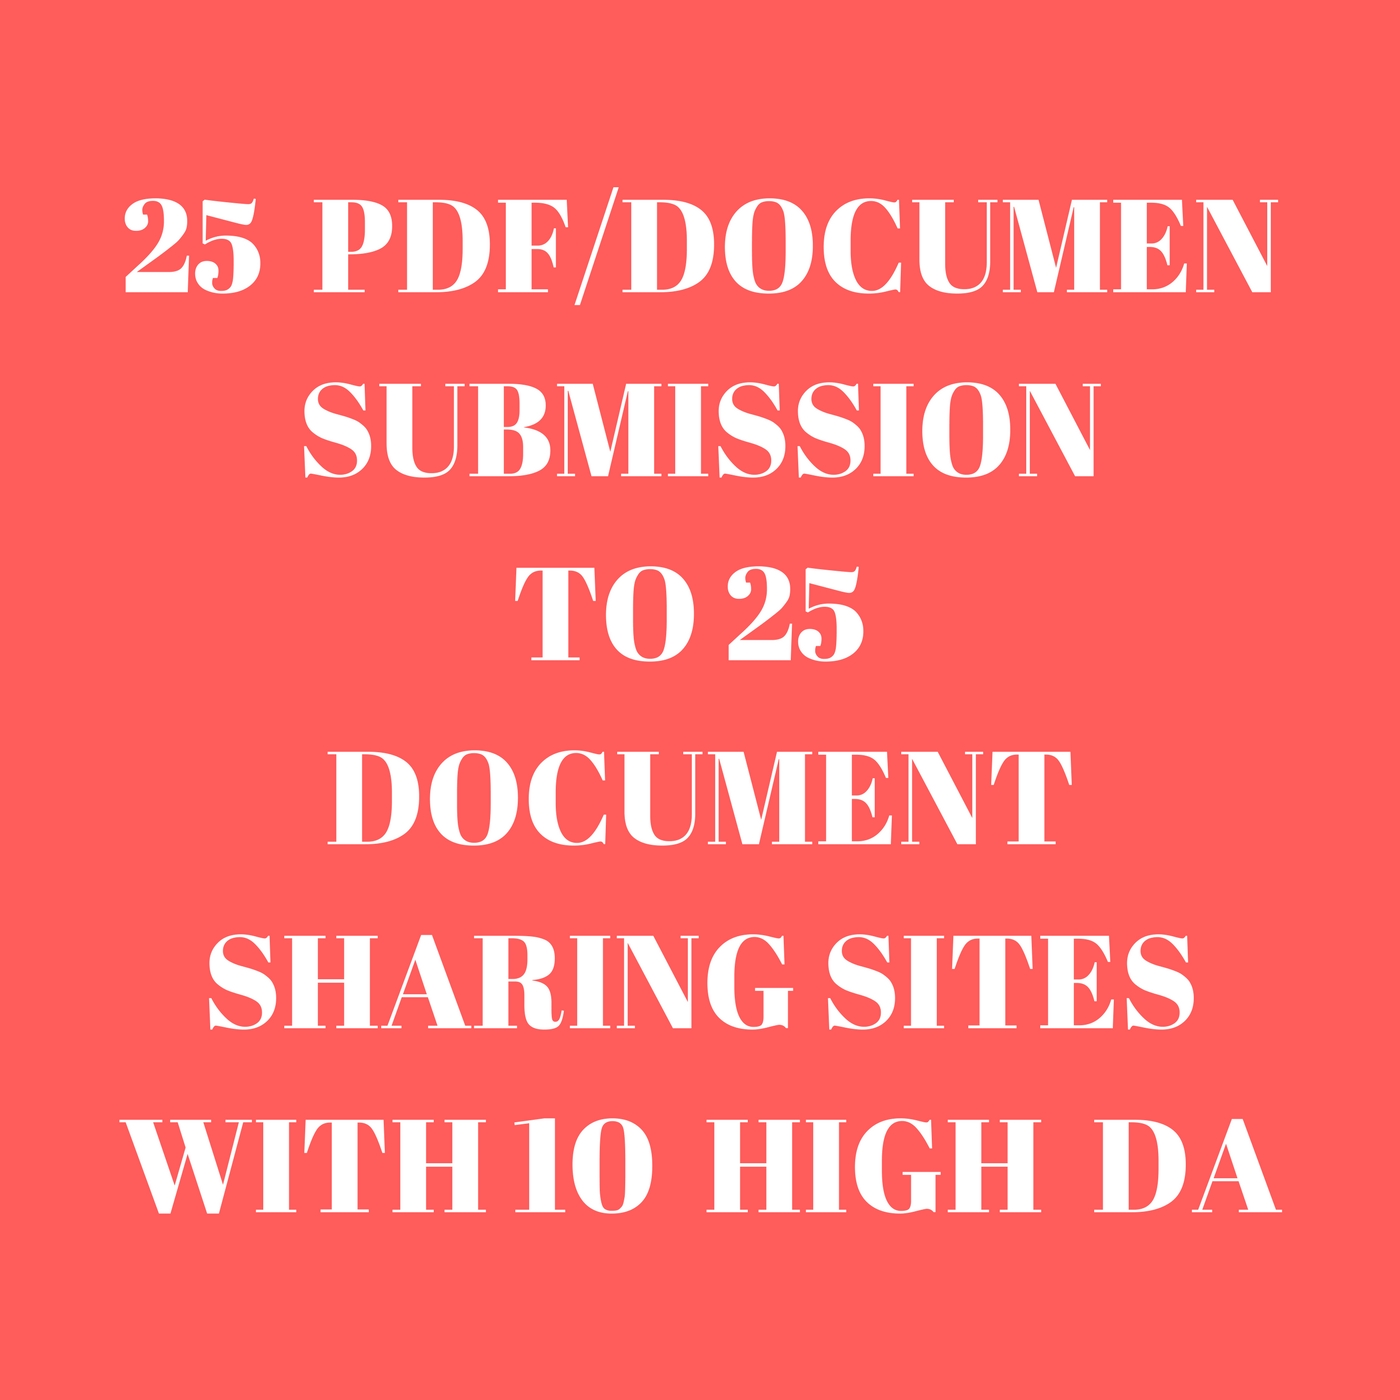 I Will  Submit your PDF File /Document To 25 High Da Document Sharing Sites